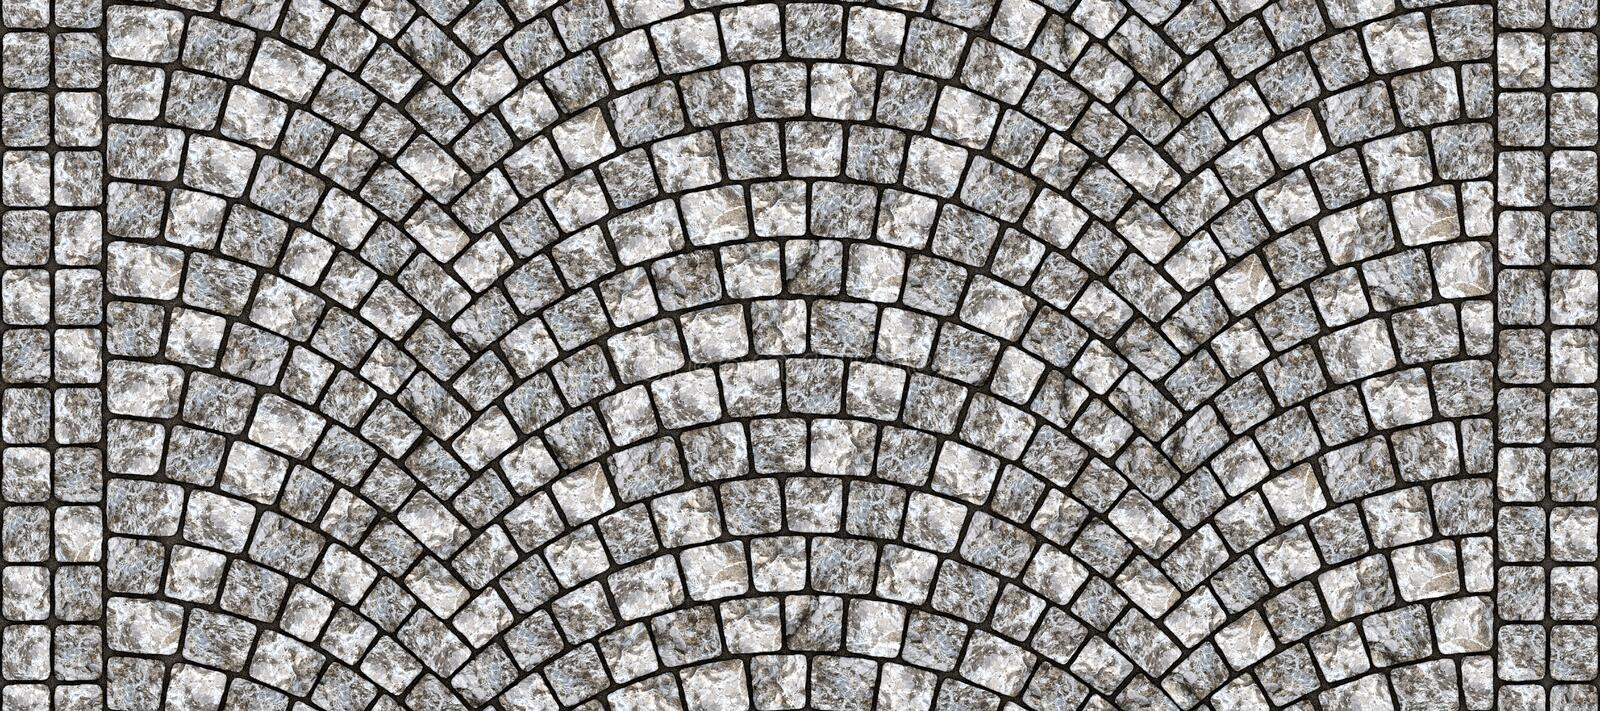 Road curved cobblestone texture 104. Cobblestone arched pavement road with edge courses at the sidewalk. Seamless tileable repeating 3D rendering texture stock illustration